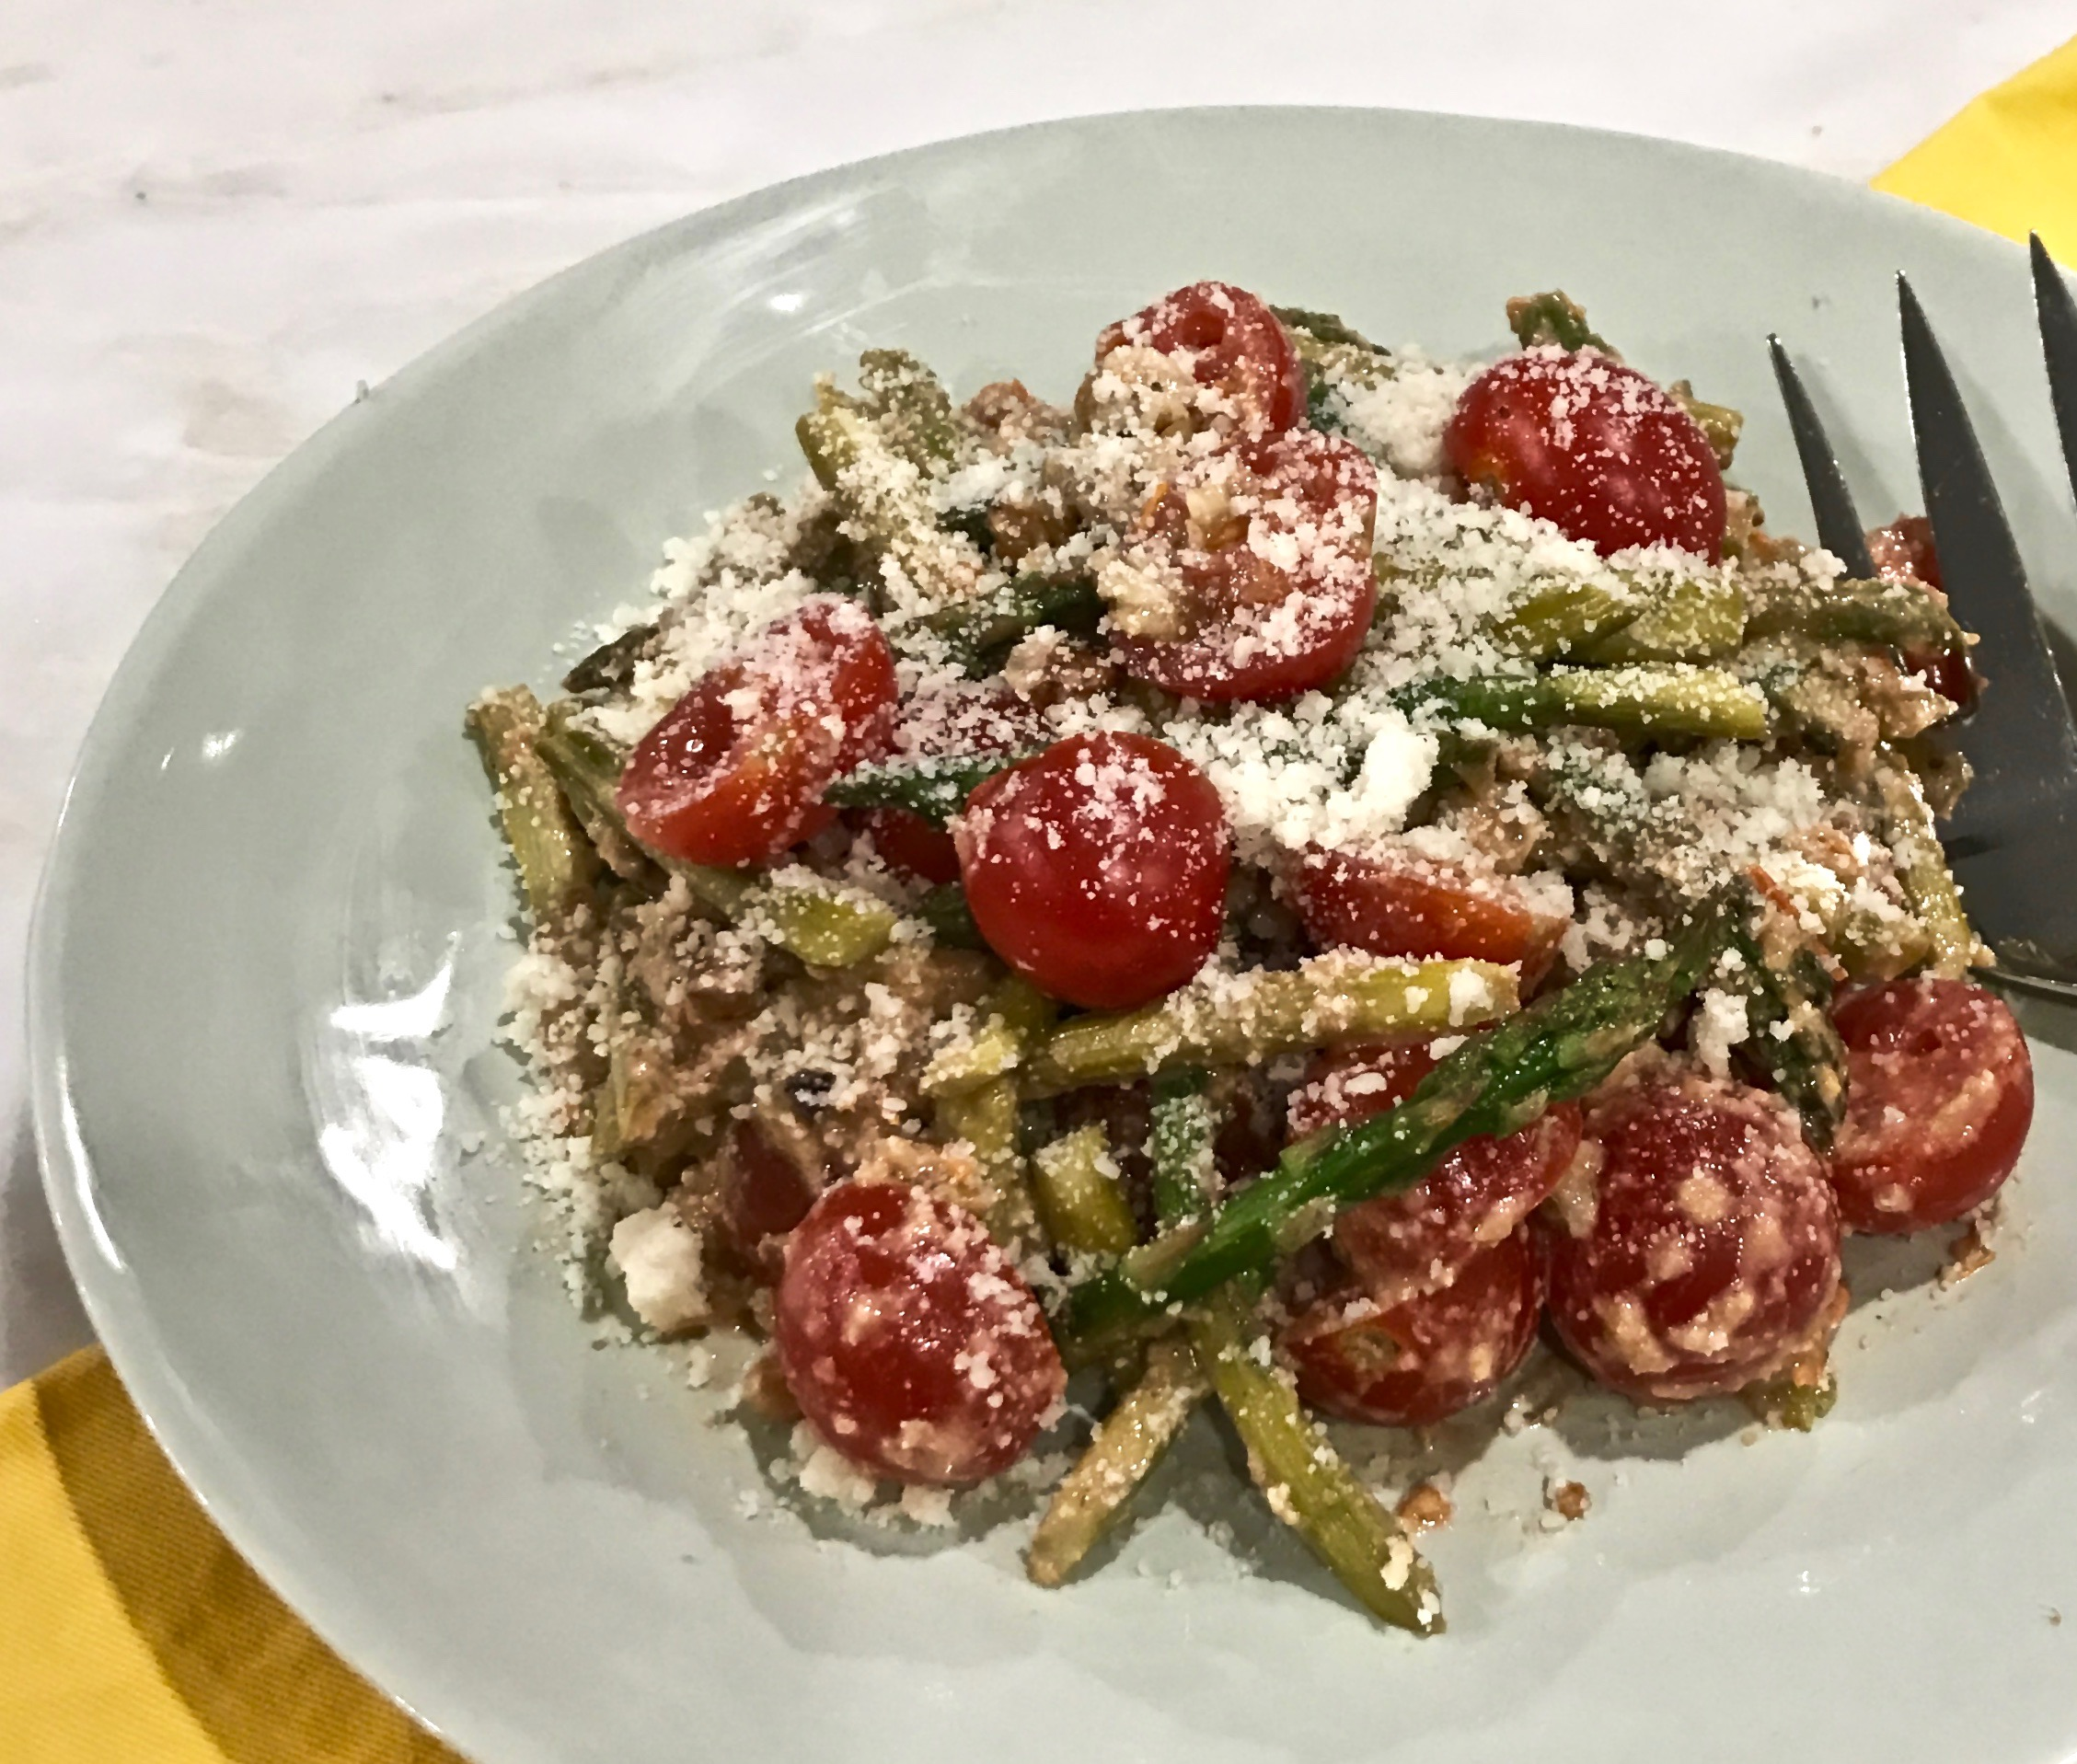 Roasted Asparagus With Walnuts, Parmesan, And Cherry Tomatoes | Cindy